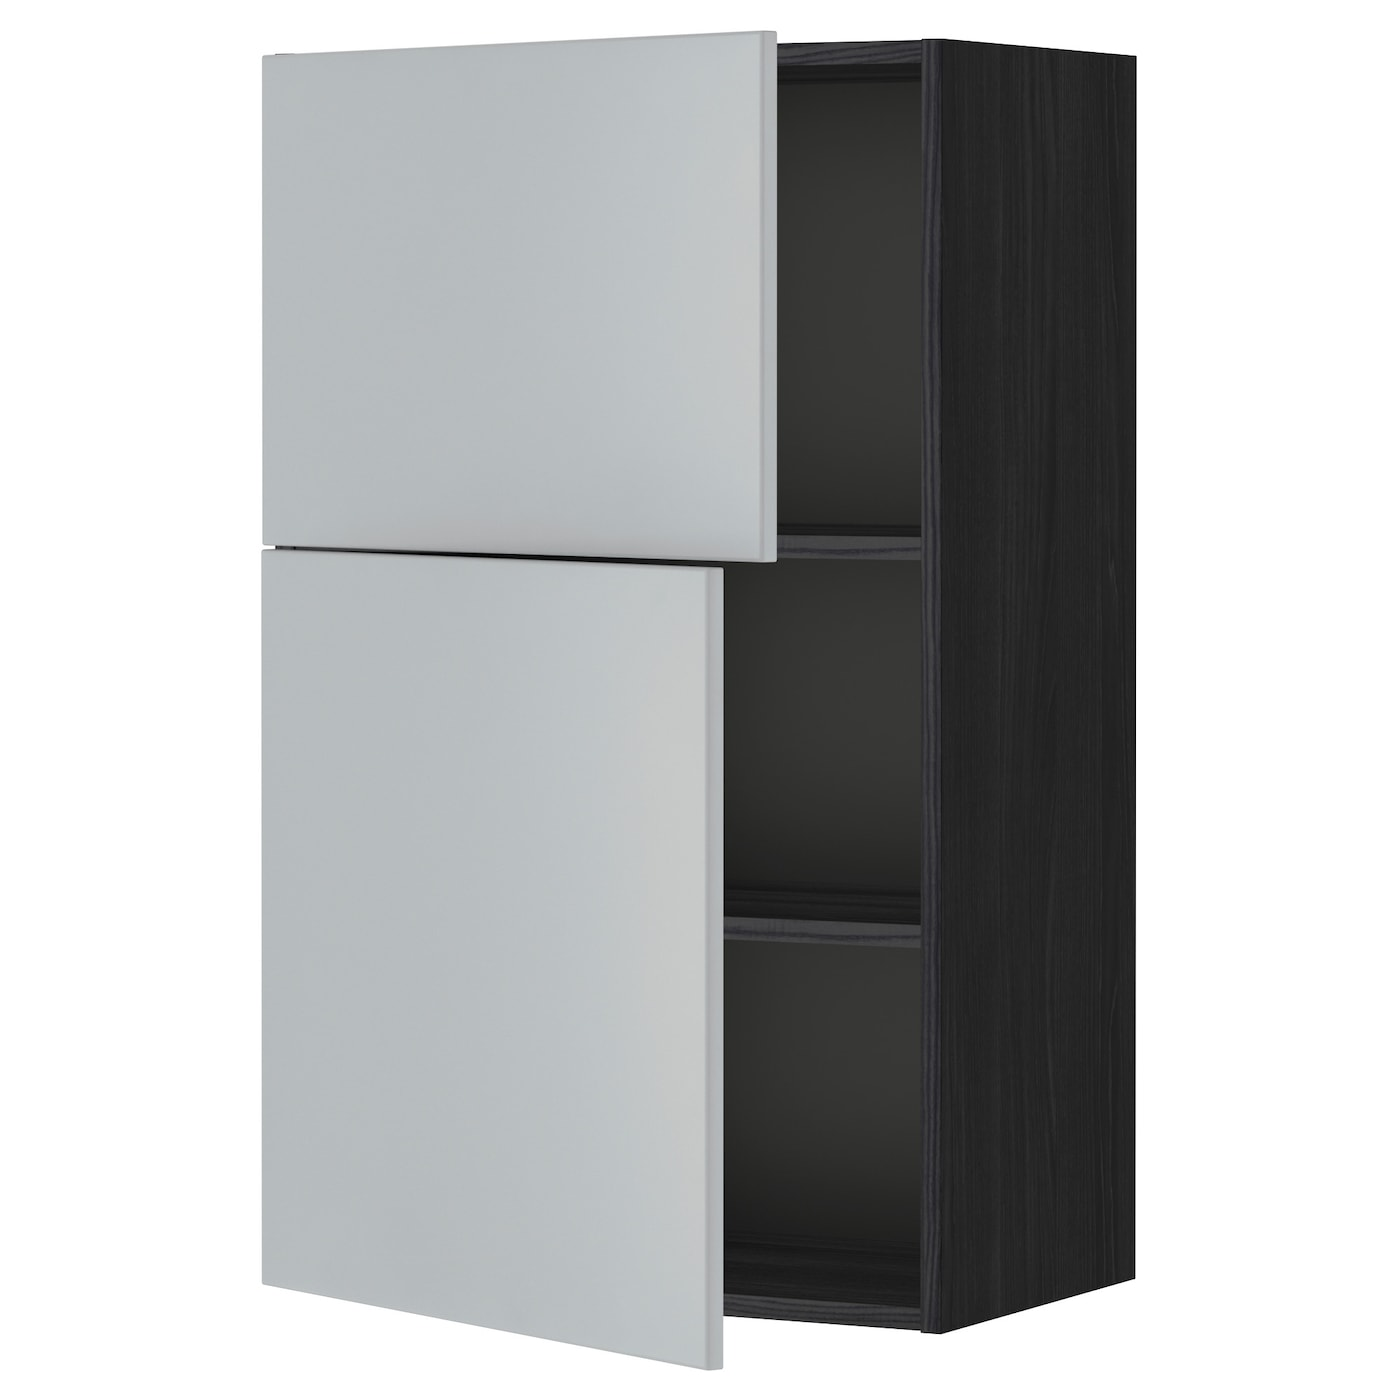 Metod Wall Cabinet With Shelves 2 Doors Black Veddinge